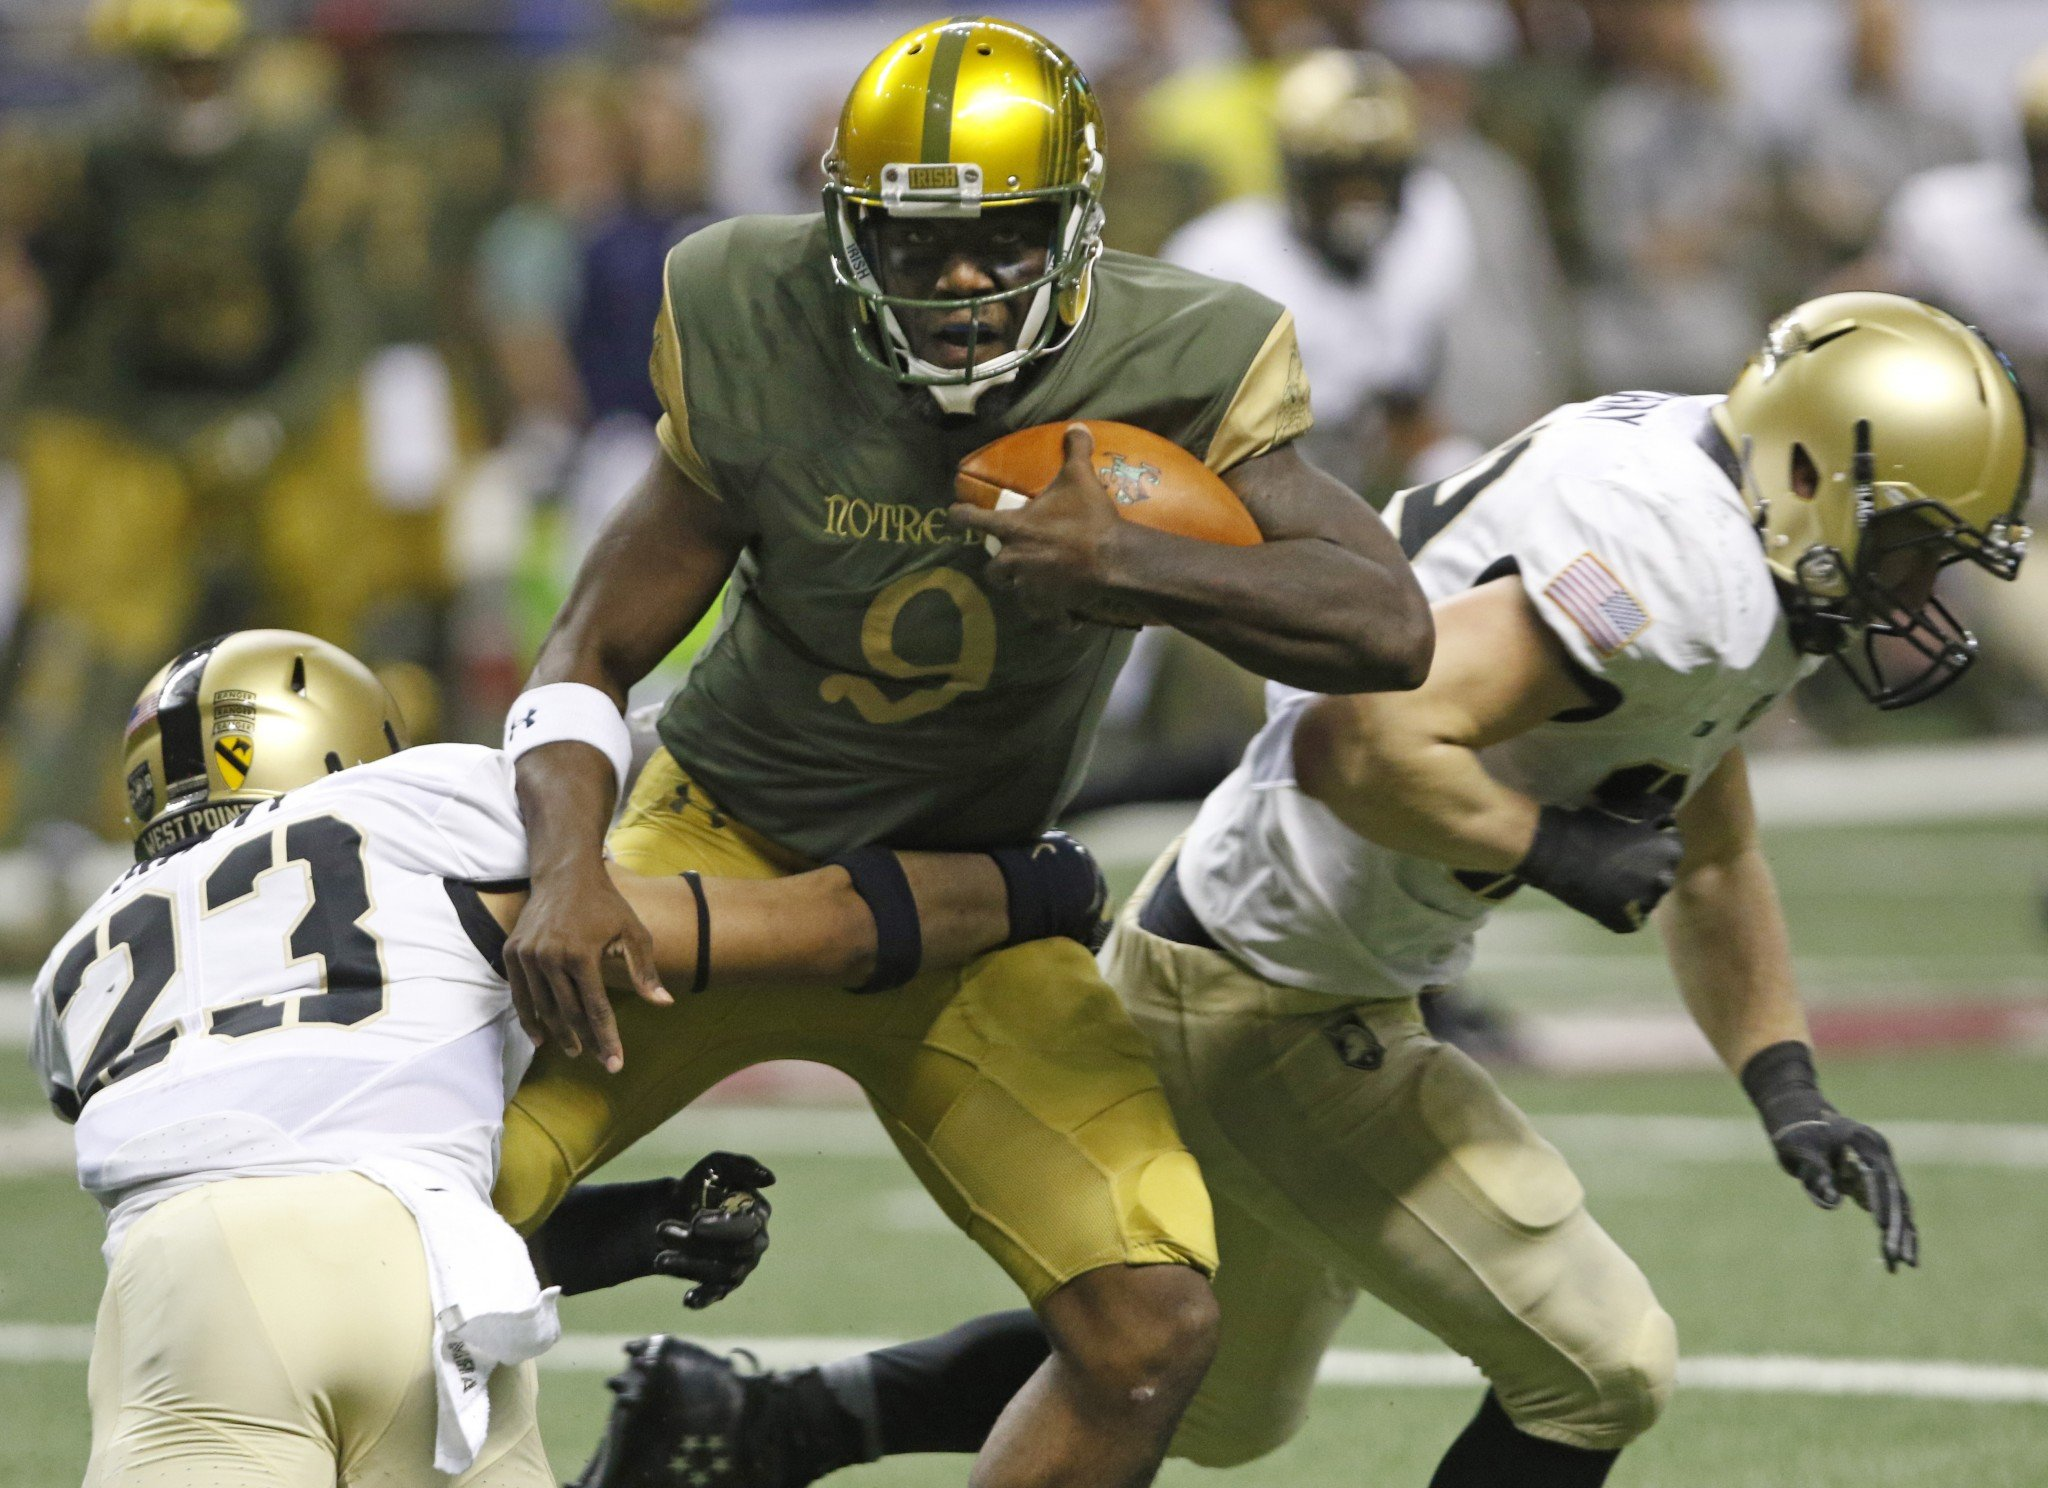 Malik Zaire split time with DeShone Kizer in Notre Dame's season-opening loss to Texas. (Getty)